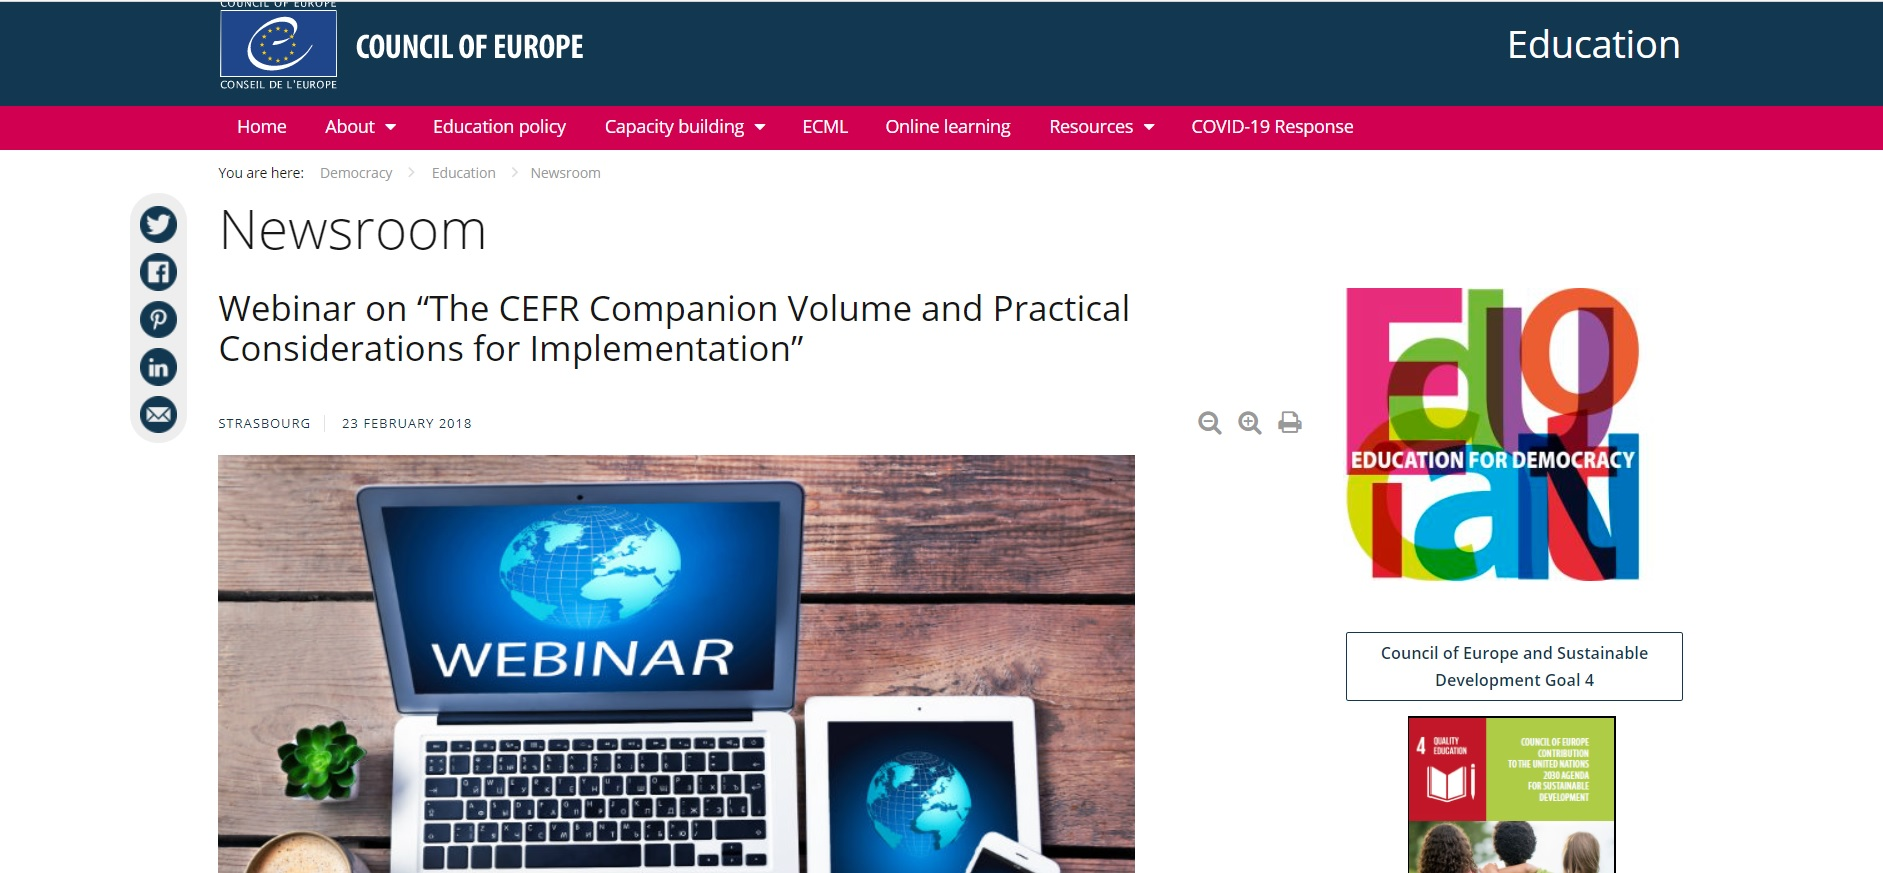 COUNCIL OF EUROPE: CEFR Companion Webinar series